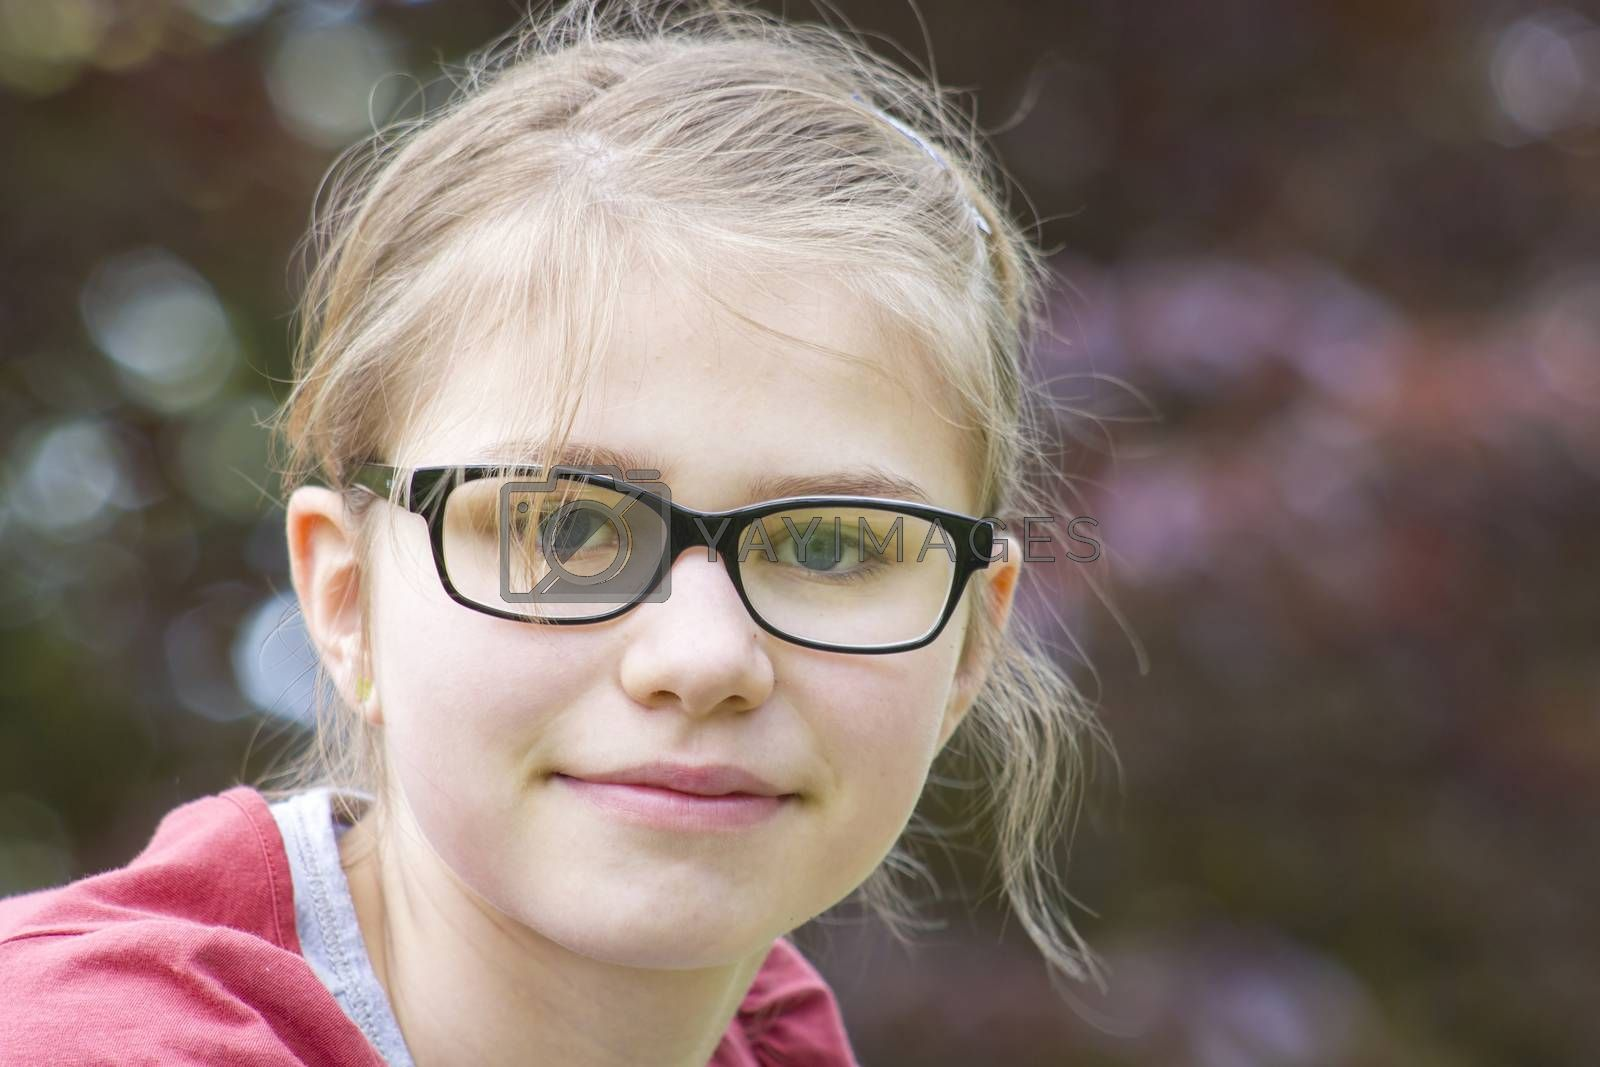 portrait of young girl with glasses by miradrozdowski